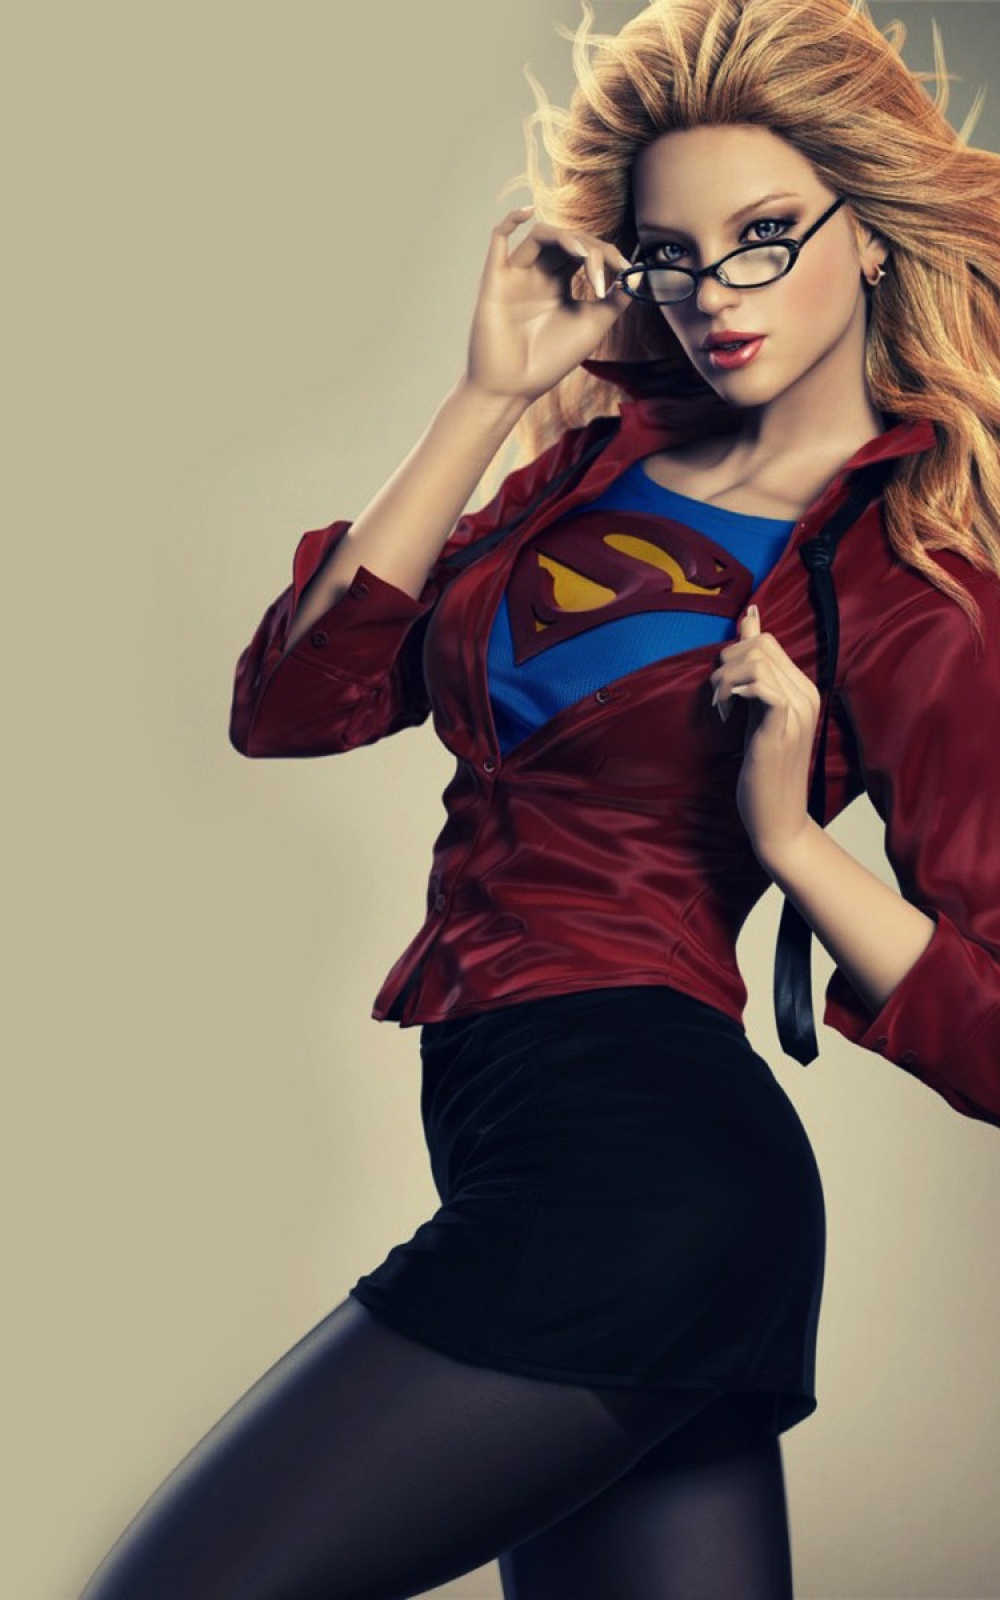 Superwoman Blonde Android Wallpaper 1000x1600